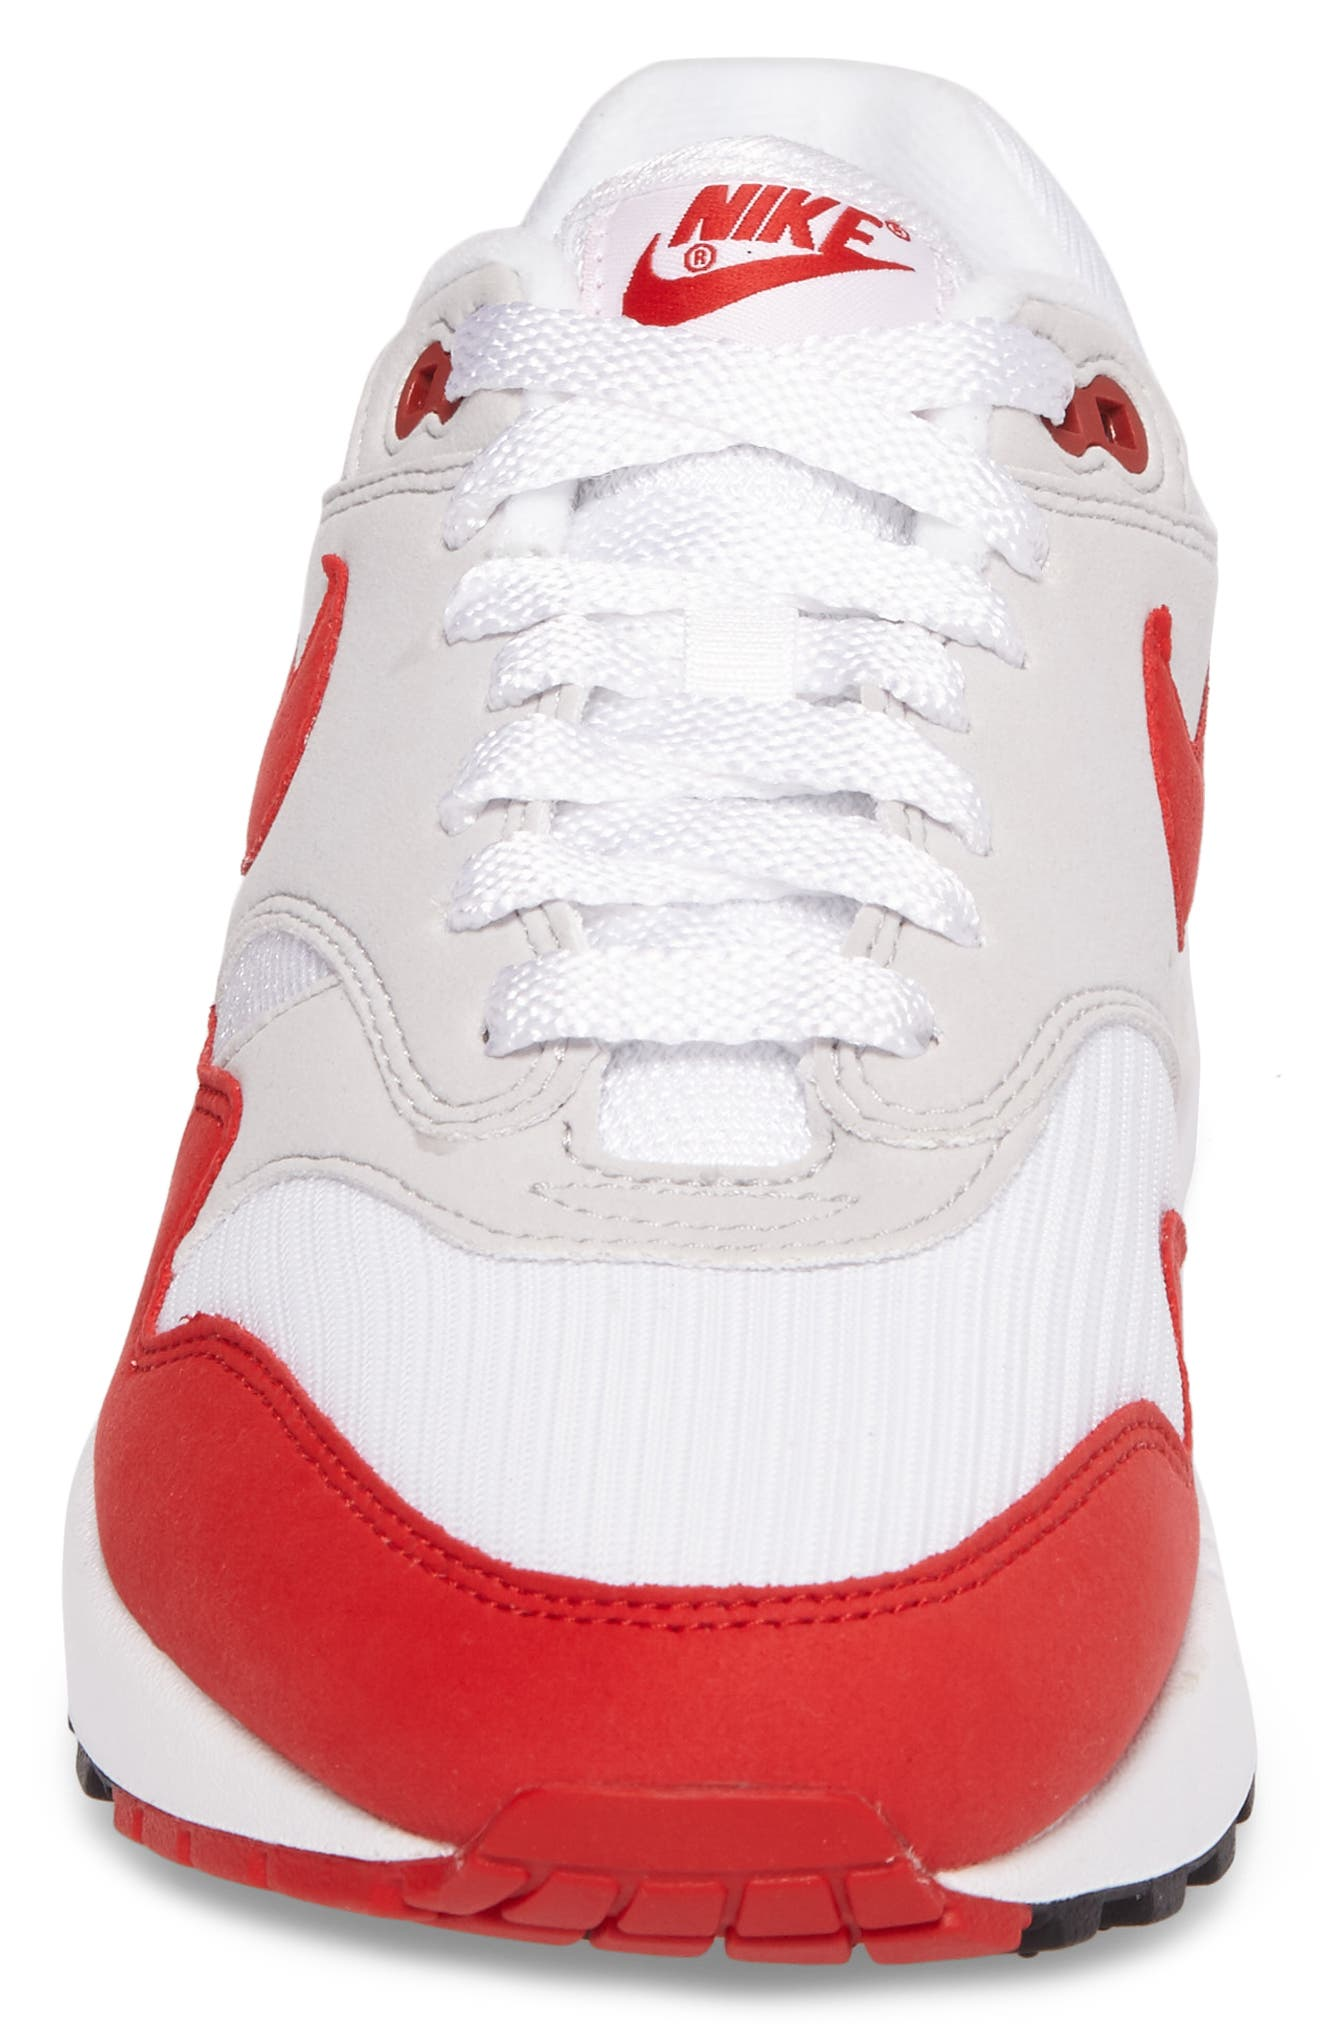 Air Max 1 Anniversary Sneaker,                             Alternate thumbnail 4, color,                             WHITE/ RED/ GREY/ BLACK